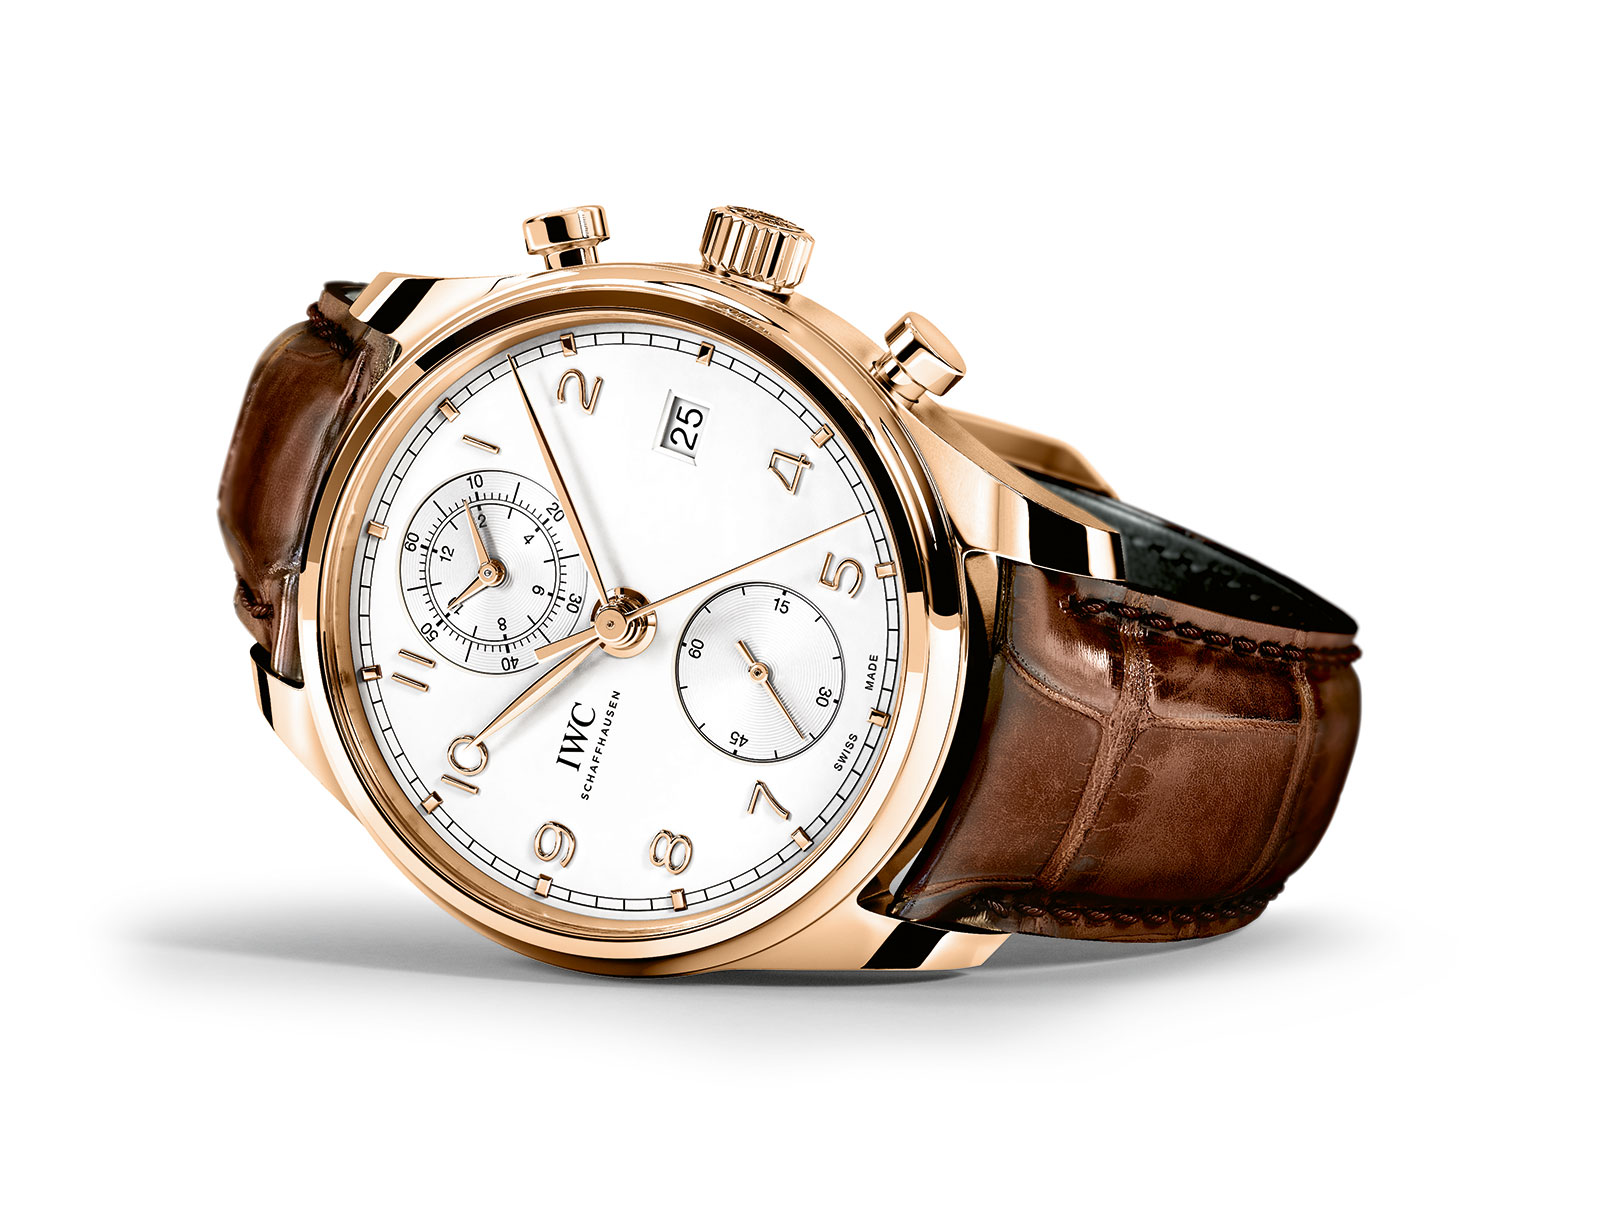 IWC Portugieser Chronograph Classic red gold 2